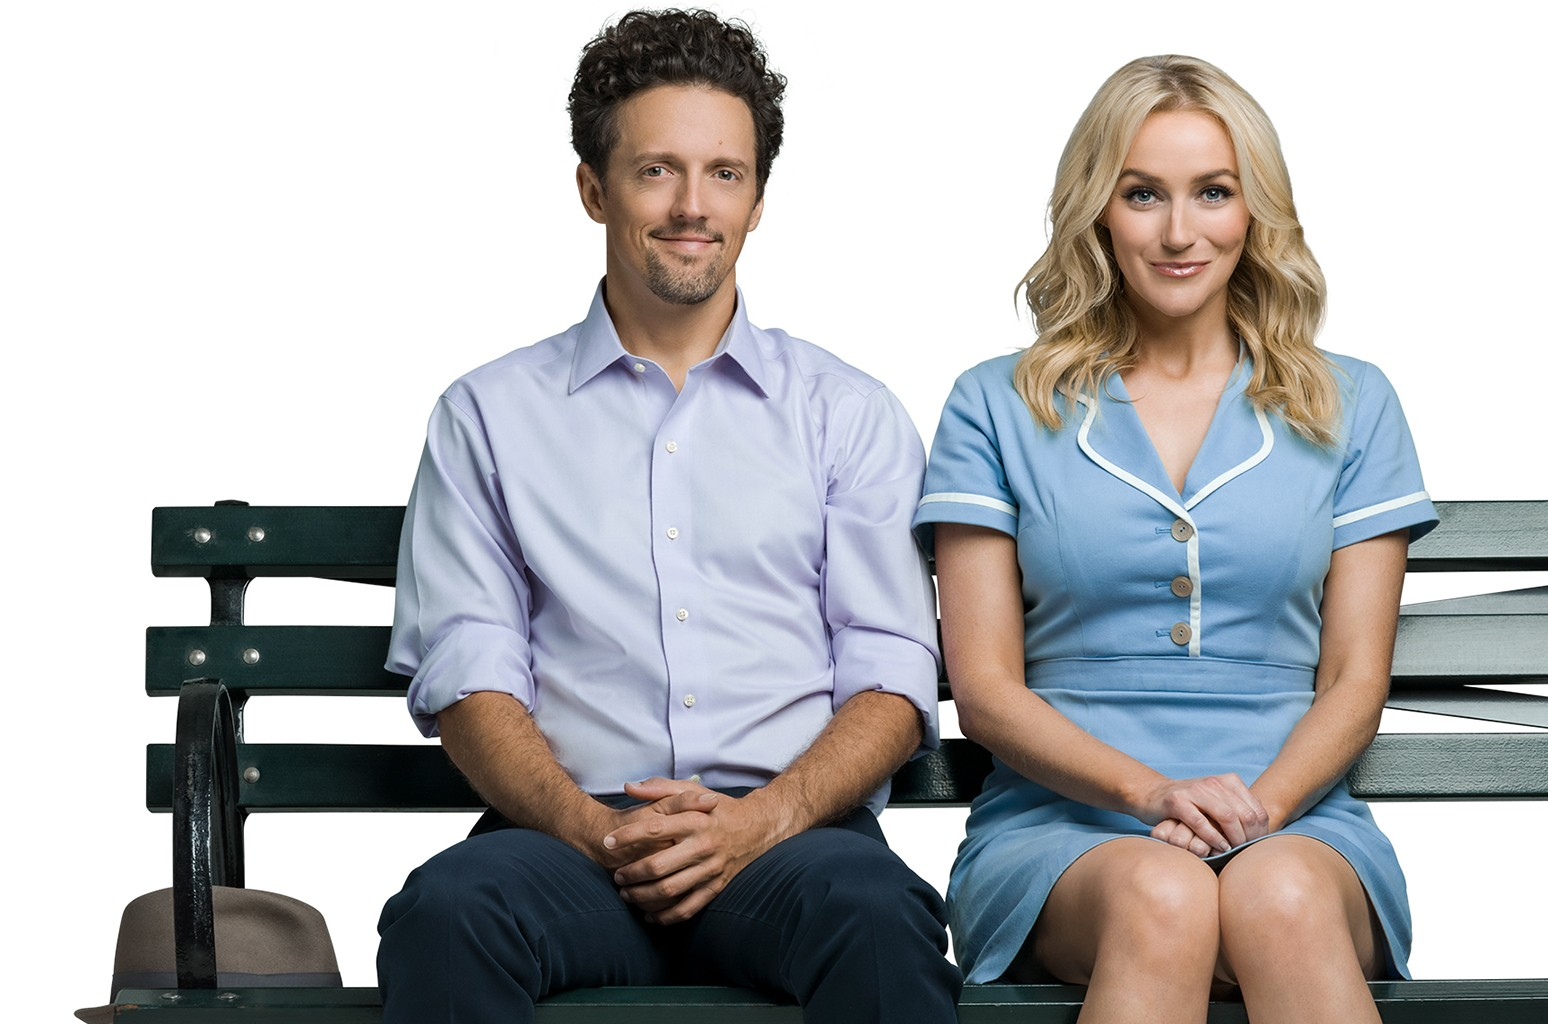 Jason Mraz and Betsy Wolfe in a promo for Waitress